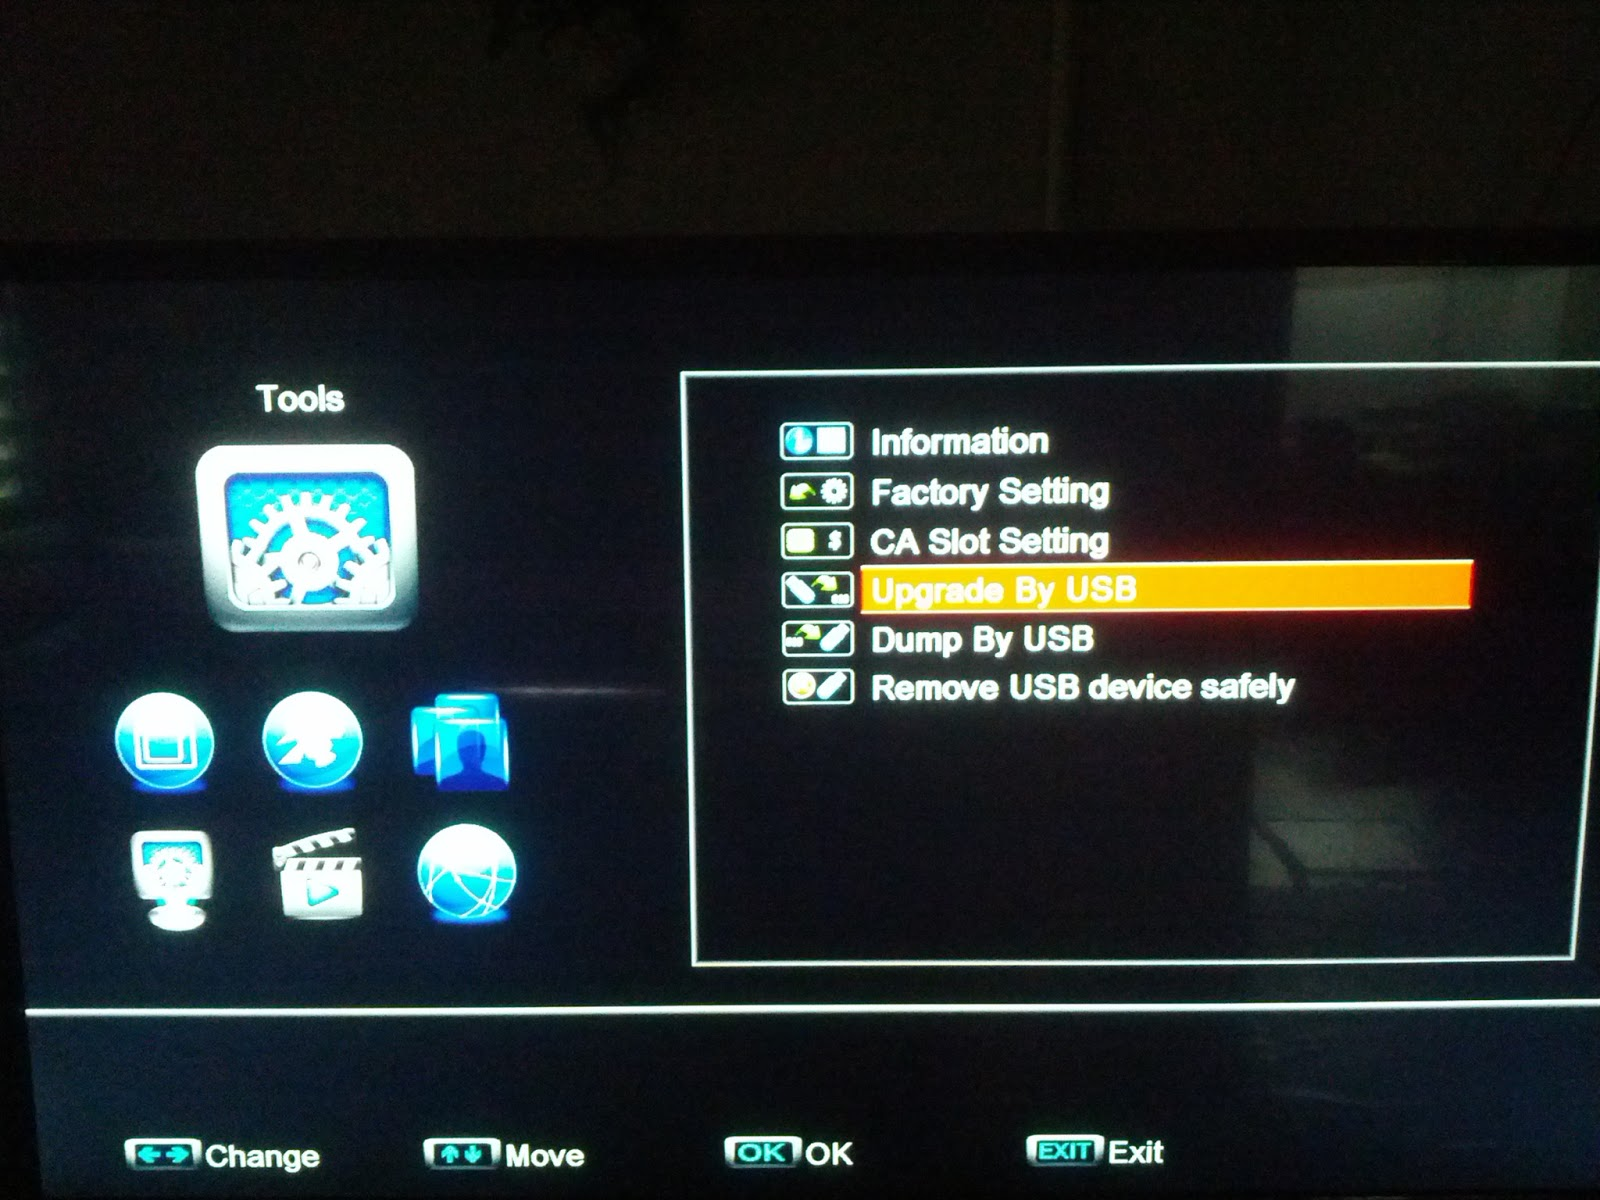 Skybox f3 latest firmware update